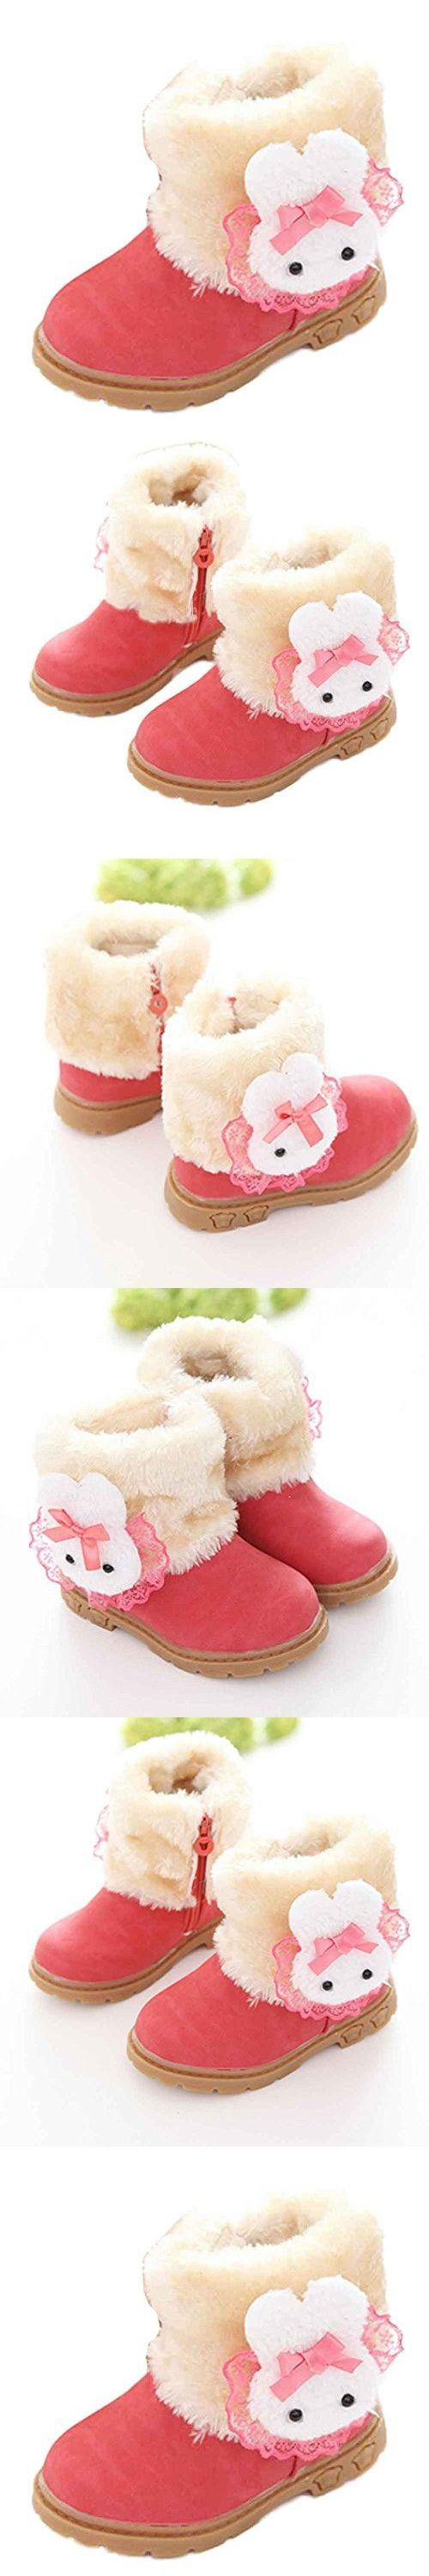 GBSELL Cute Baby Toddler Girl Winter Warm Rabbit Boot Outdoor Snow Boots Shoes (Red, 2-3 Year)